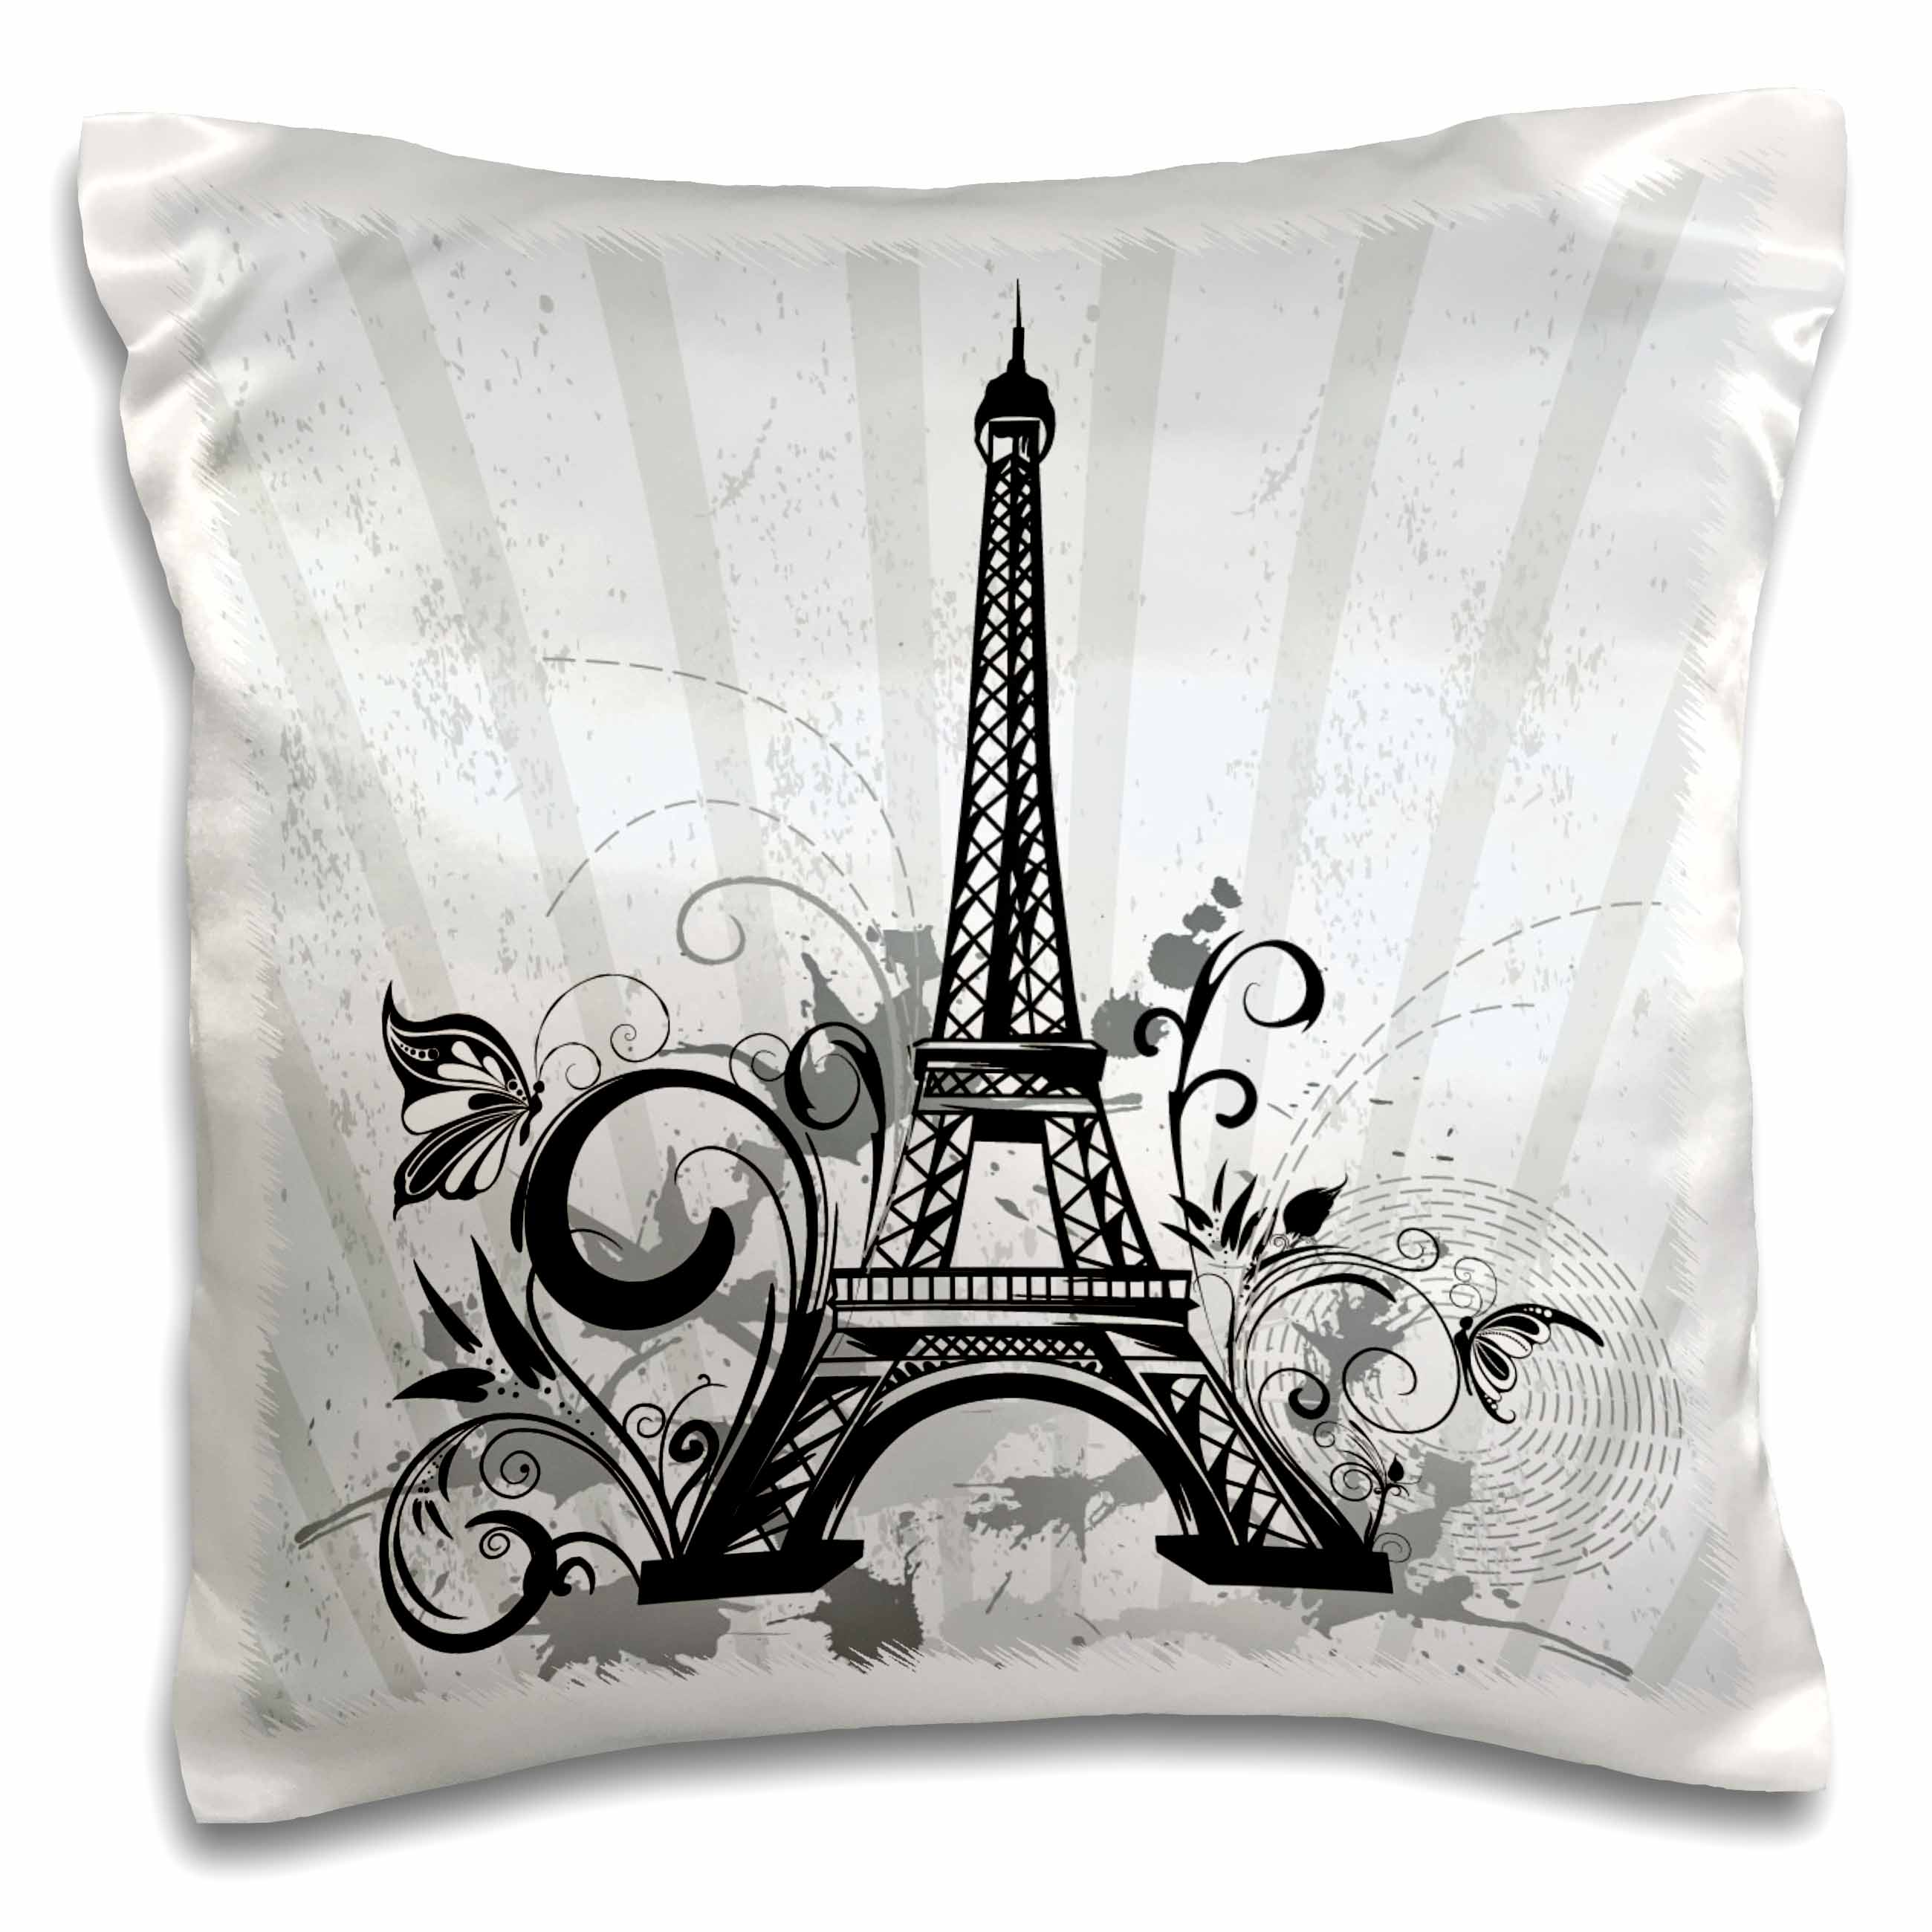 3dRose Black and Steel Blue Eiffel Tower With Flourishes and Butterflies, Pillow Case, 16 by 16-inch